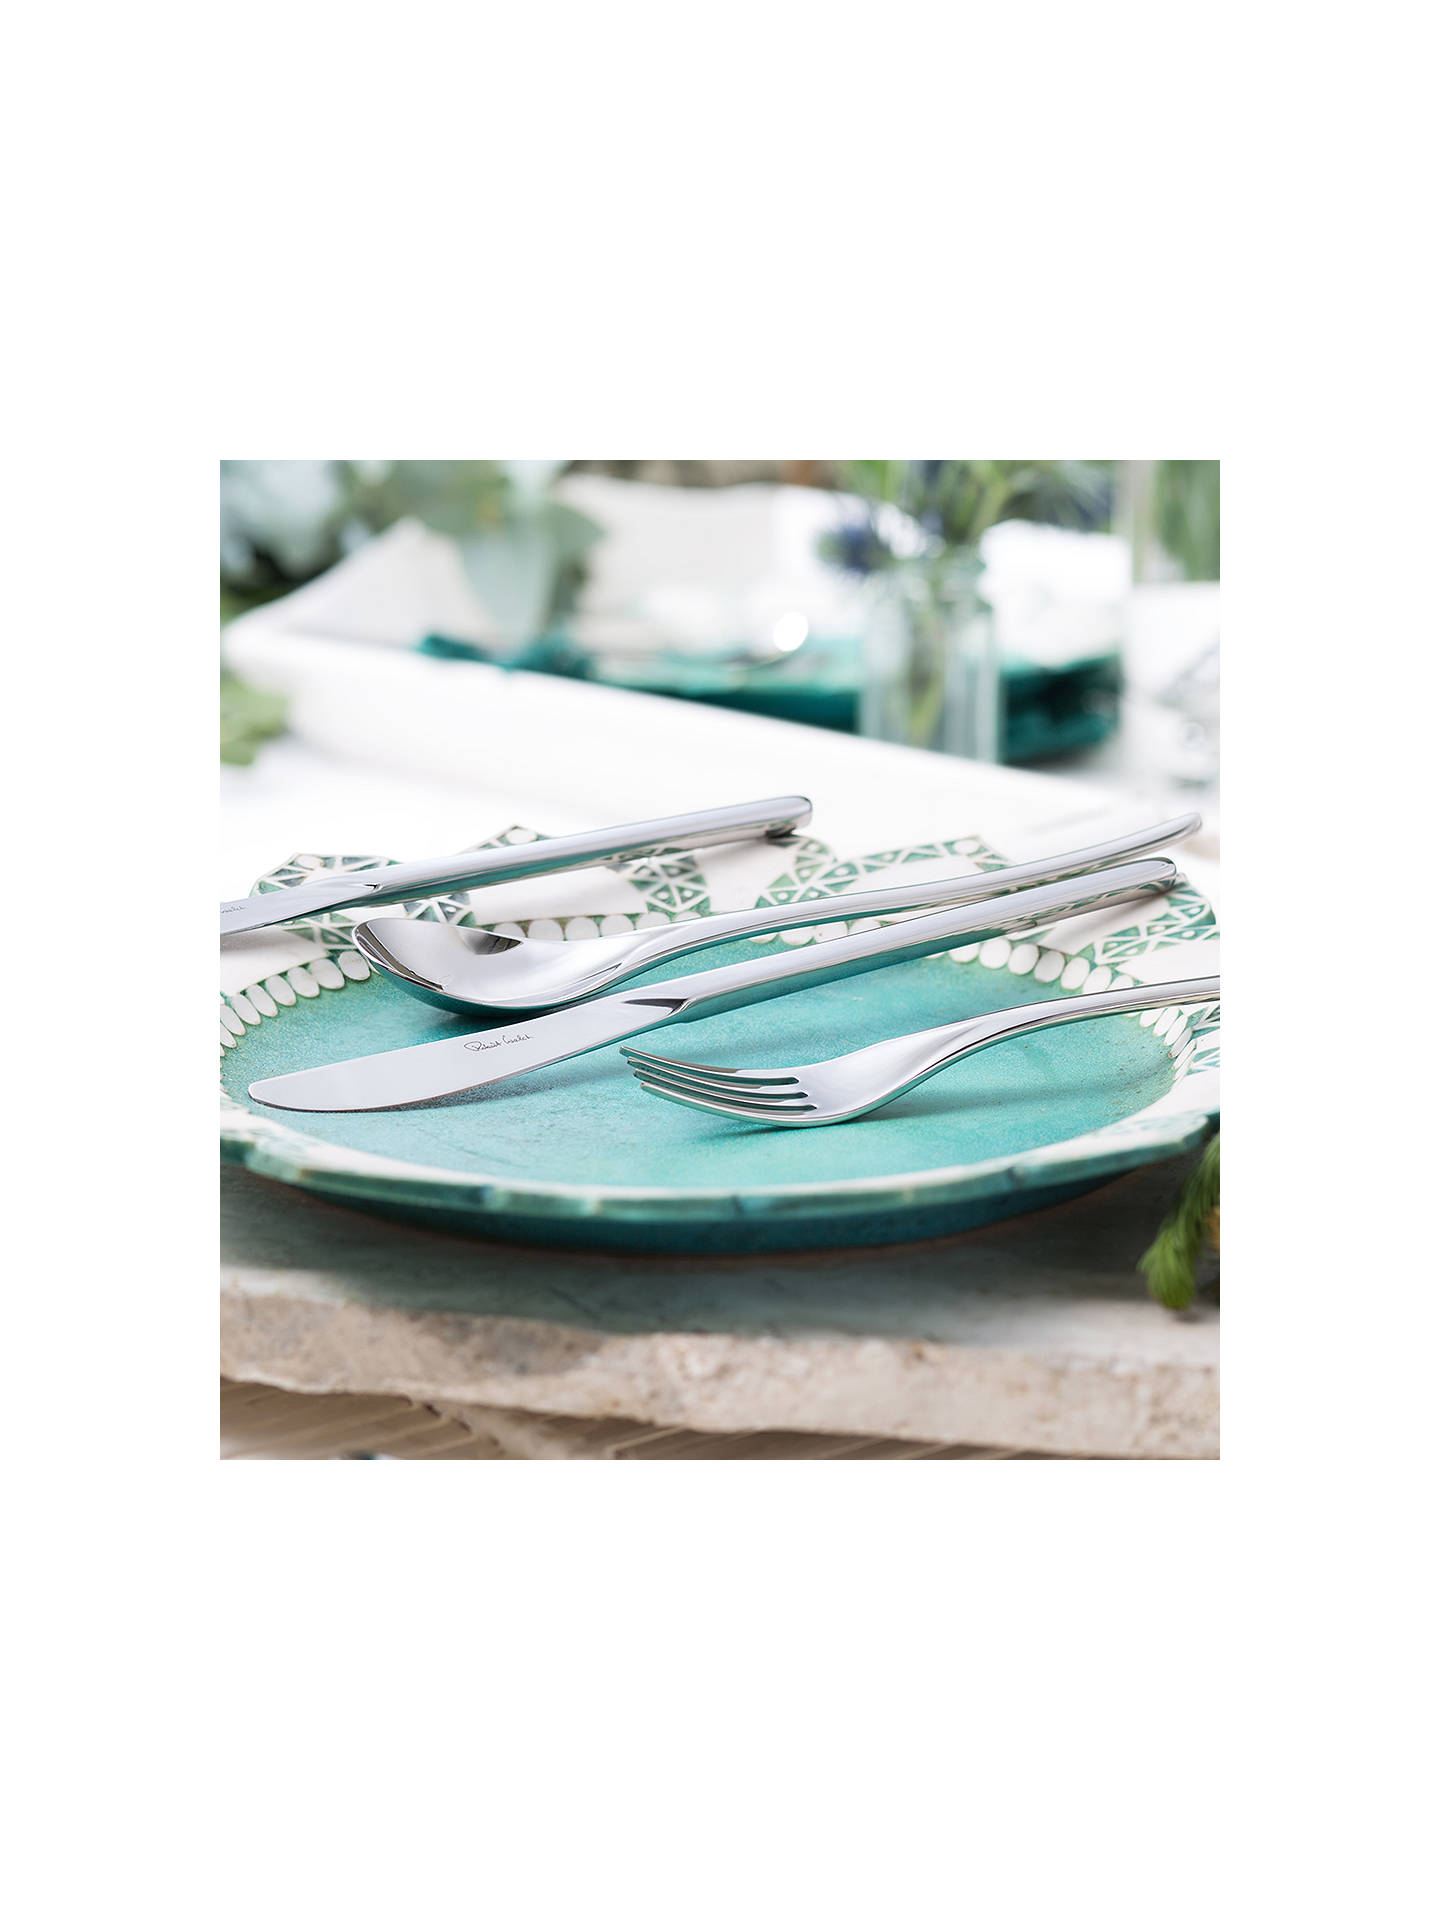 Buy Robert Welch Bud Stainless Steel Cutlery Set, 84 Piece/12 Place Settings Online at johnlewis.com